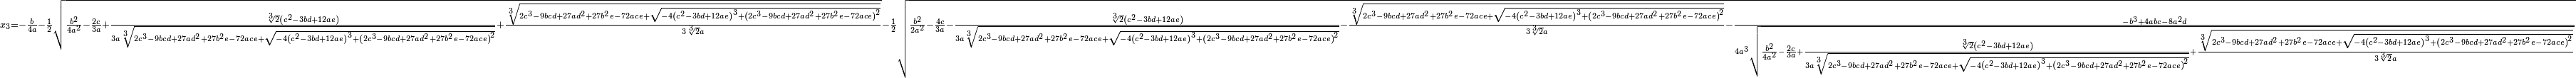 {}_{x_3=-\frac{b}{4a}-\frac{1}{2} \sqrt{\frac{b^2}{4a^2}-\frac{2c}{3a}+\frac{\sqrt[3]{2}\left(c^2-3bd+12ae\right)}{3a\sqrt[3]{2c^3-9bcd+27ad^2+27b^2e-72ace+\sqrt{-4\left(c^2-3bd+12ae\right)^3+\left(2c^3-9bcd+27ad^2+27b^2e-72ace\right)^2}}}+\frac{\sqrt[3]{2c^3-9bcd+27ad^2+27b^2e-72ace+\sqrt{-4\left(c^2-3bd+12ae\right)^3+\left(2c^3-9bcd+27ad^2+27b^2e-72ace\right)^2}}}{3\sqrt[3]{2}a}}-\frac{1}{2} \sqrt{\frac{b^2}{2a^2}-\frac{4c}{3a}-\frac{\sqrt[3]{2}\left(c^2-3bd+12ae\right)}{3a\sqrt[3]{2c^3-9bcd+27ad^2+27b^2e-72ace+\sqrt{-4\left(c^2-3bd+12ae\right)^3+\left(2c^3-9bcd+27ad^2+27b^2e-72ace\right)^2}}}-\frac{\sqrt[3]{2c^3-9bcd+27ad^2+27b^2e-72ace+\sqrt{-4\left(c^2-3bd+12ae\right)^3+\left(2c^3-9bcd+27ad^2+27b^2e-72ace\right)^2}}}{3\sqrt[3]{2}a}-\frac{-b^3+4abc-8a^2d}{4a^3\sqrt{\frac{b^2}{4a^2}-\frac{2c}{3a}+\frac{\sqrt[3]{2}\left(c^2-3bd+12ae\right)}{3a\sqrt[3]{2c^3-9bcd+27ad^2+27b^2e-72ace+\sqrt{-4\left(c^2-3bd+12ae\right)^3+\left(2c^3-9bcd+27ad^2+27b^2e-72ace\right)^2}}}+\frac{\sqrt[3]{2c^3-9bcd+27ad^2+27b^2e-72ace+\sqrt{-4\left(c^2-3bd+12ae\right)^3+\left(2c^3-9bcd+27ad^2+27b^2e-72ace\right)^2}}} {3\sqrt[3]{2}a}}}}}